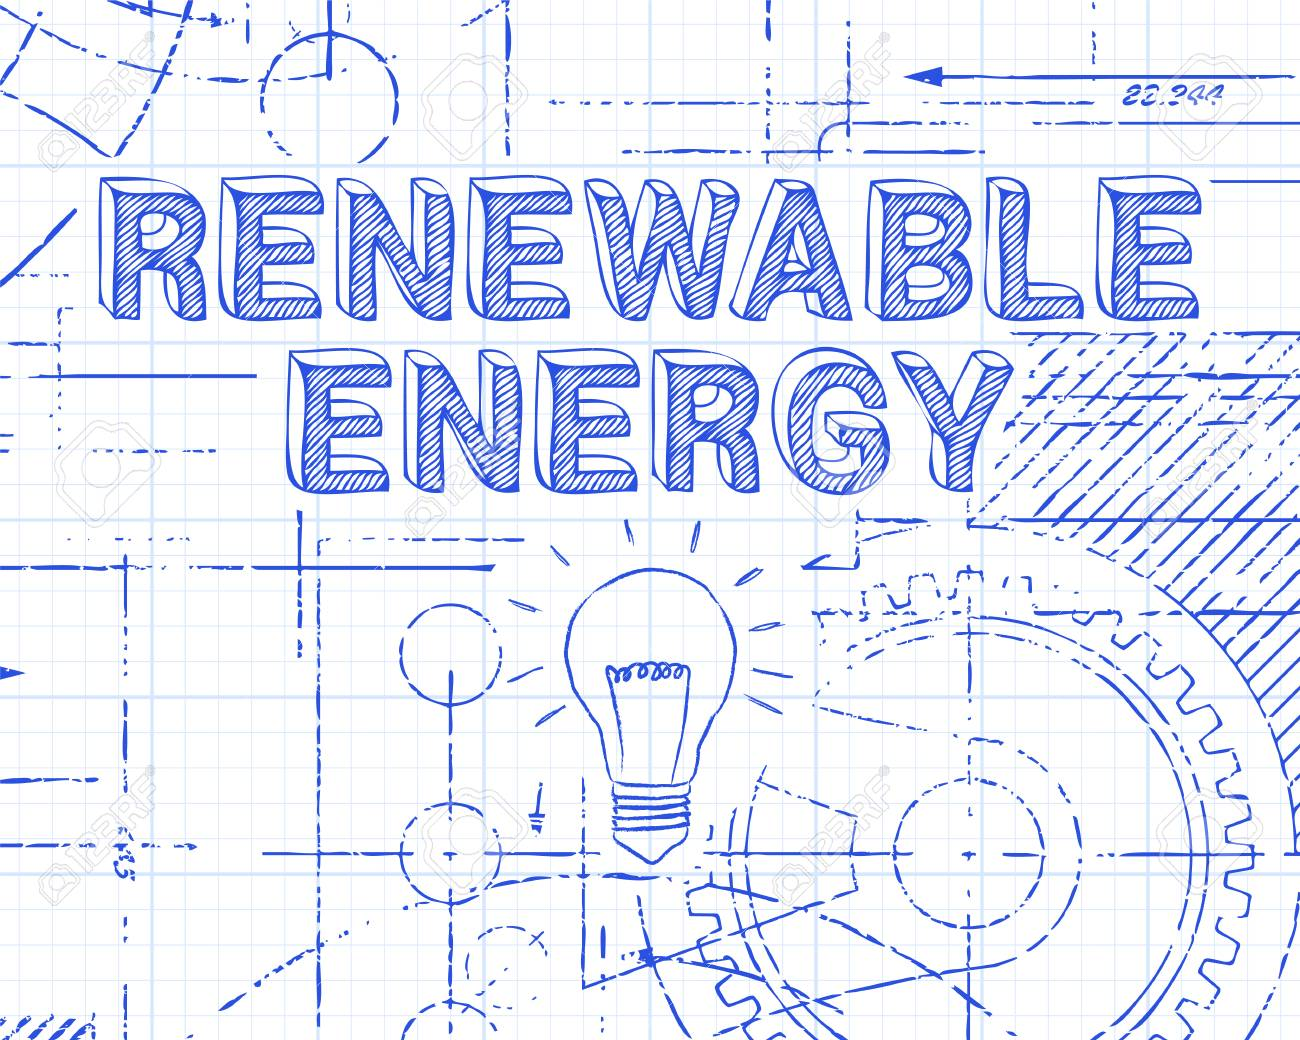 Hand Drawn Renewable Energy Sign And Light Bulb On Graph Paper Schematic Background Stock Vector 87527647